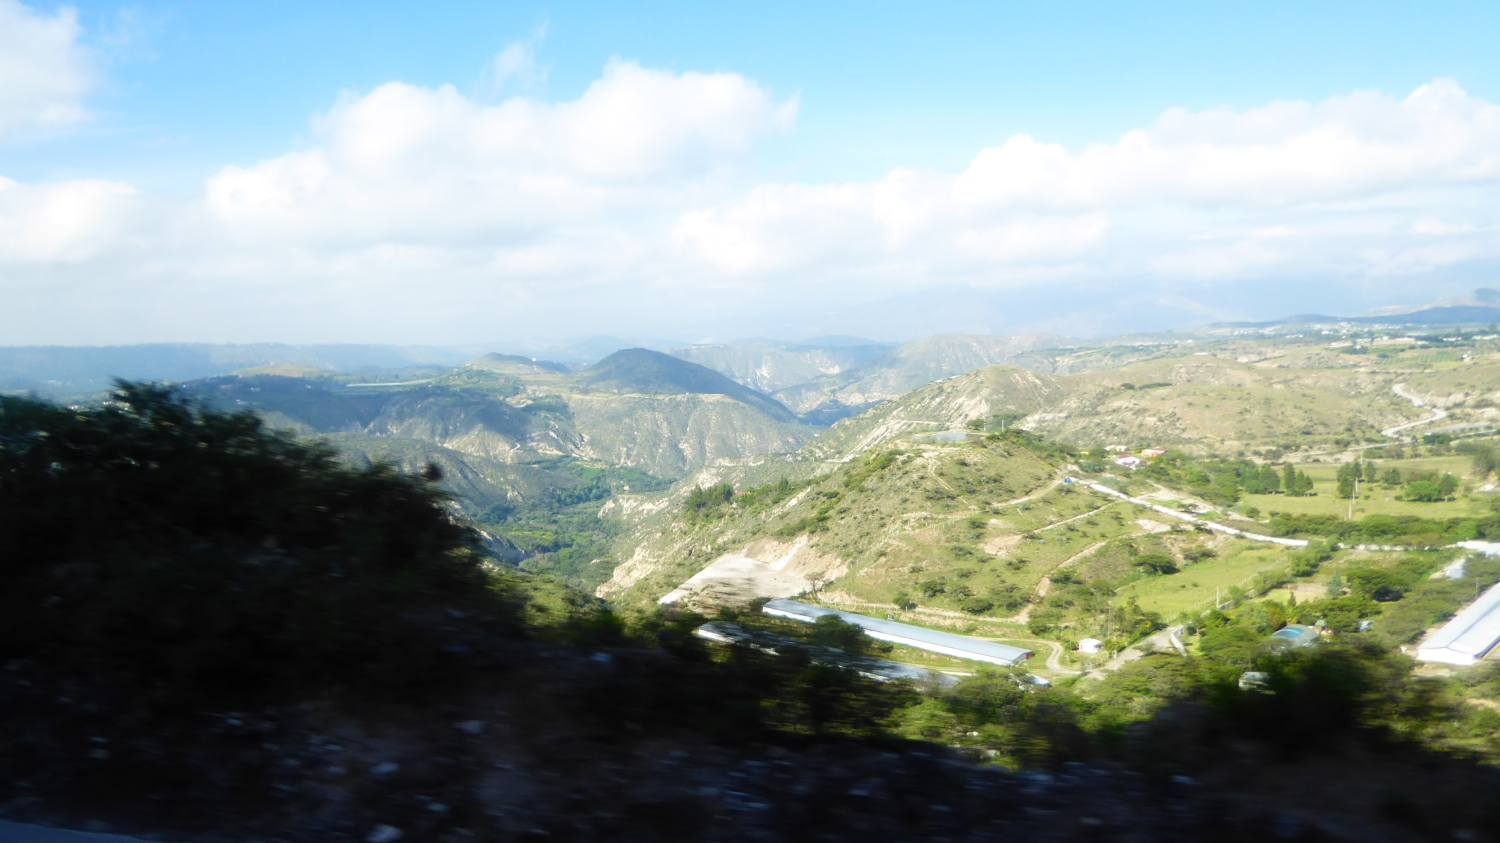 along hills and mountains and valleys towards north